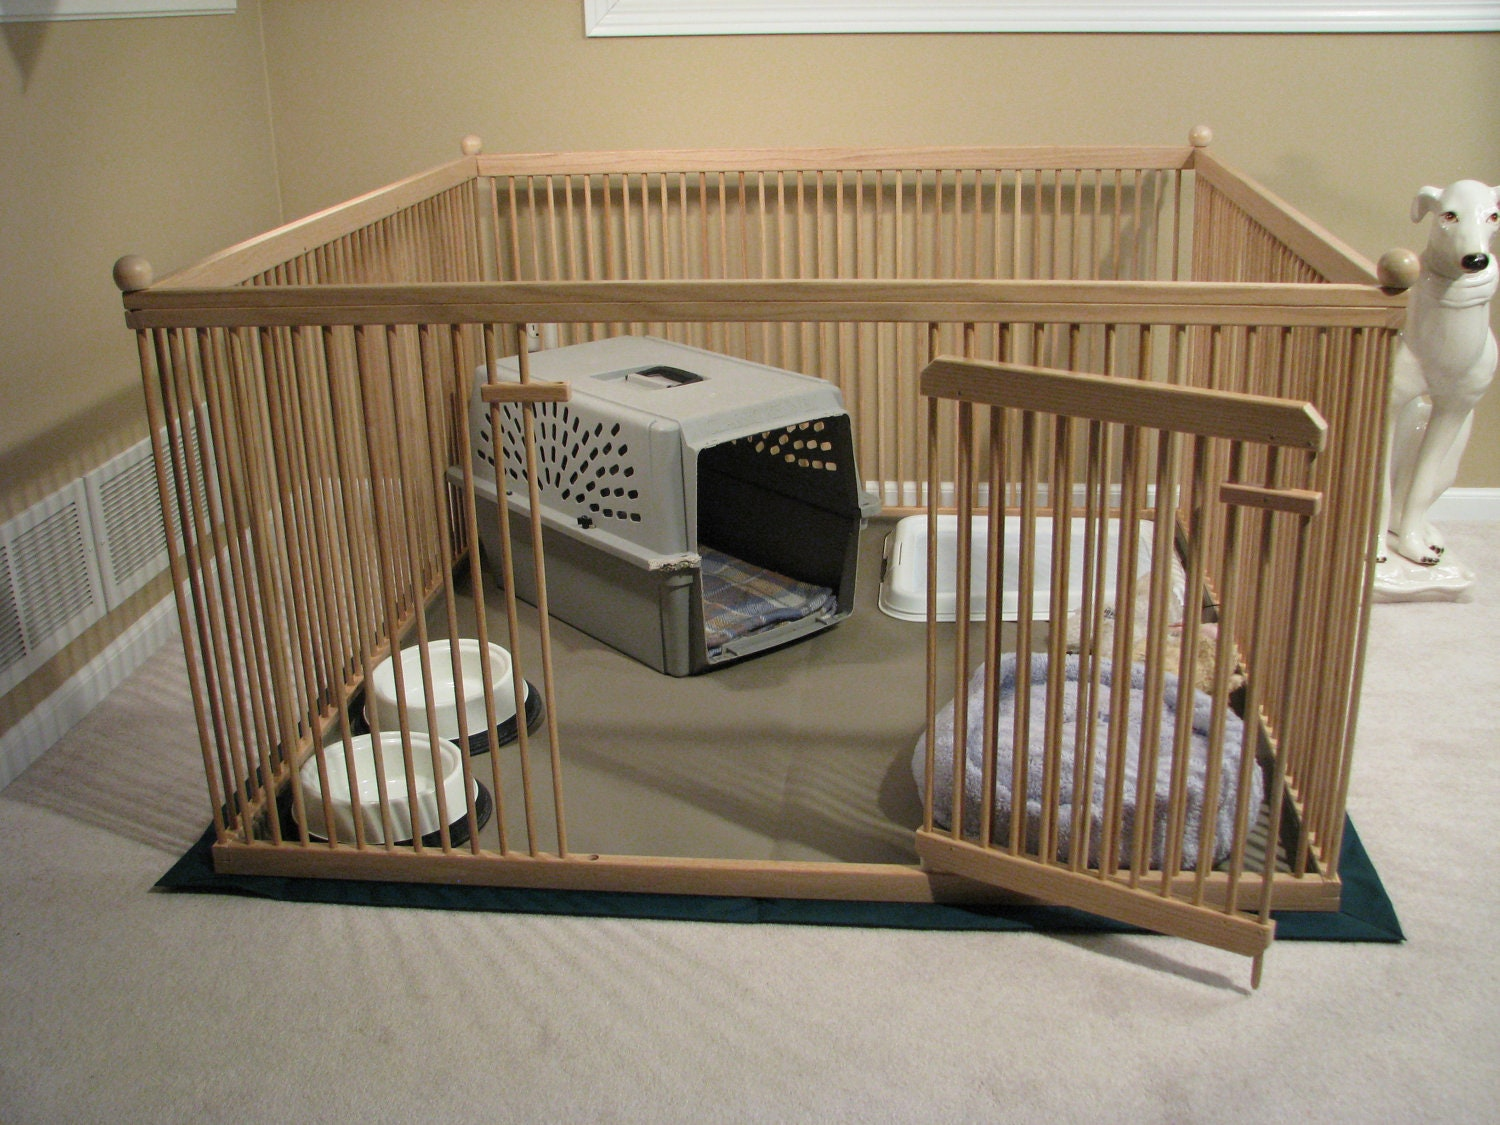 furniture quality small dog exercise pen ready to finish. Black Bedroom Furniture Sets. Home Design Ideas